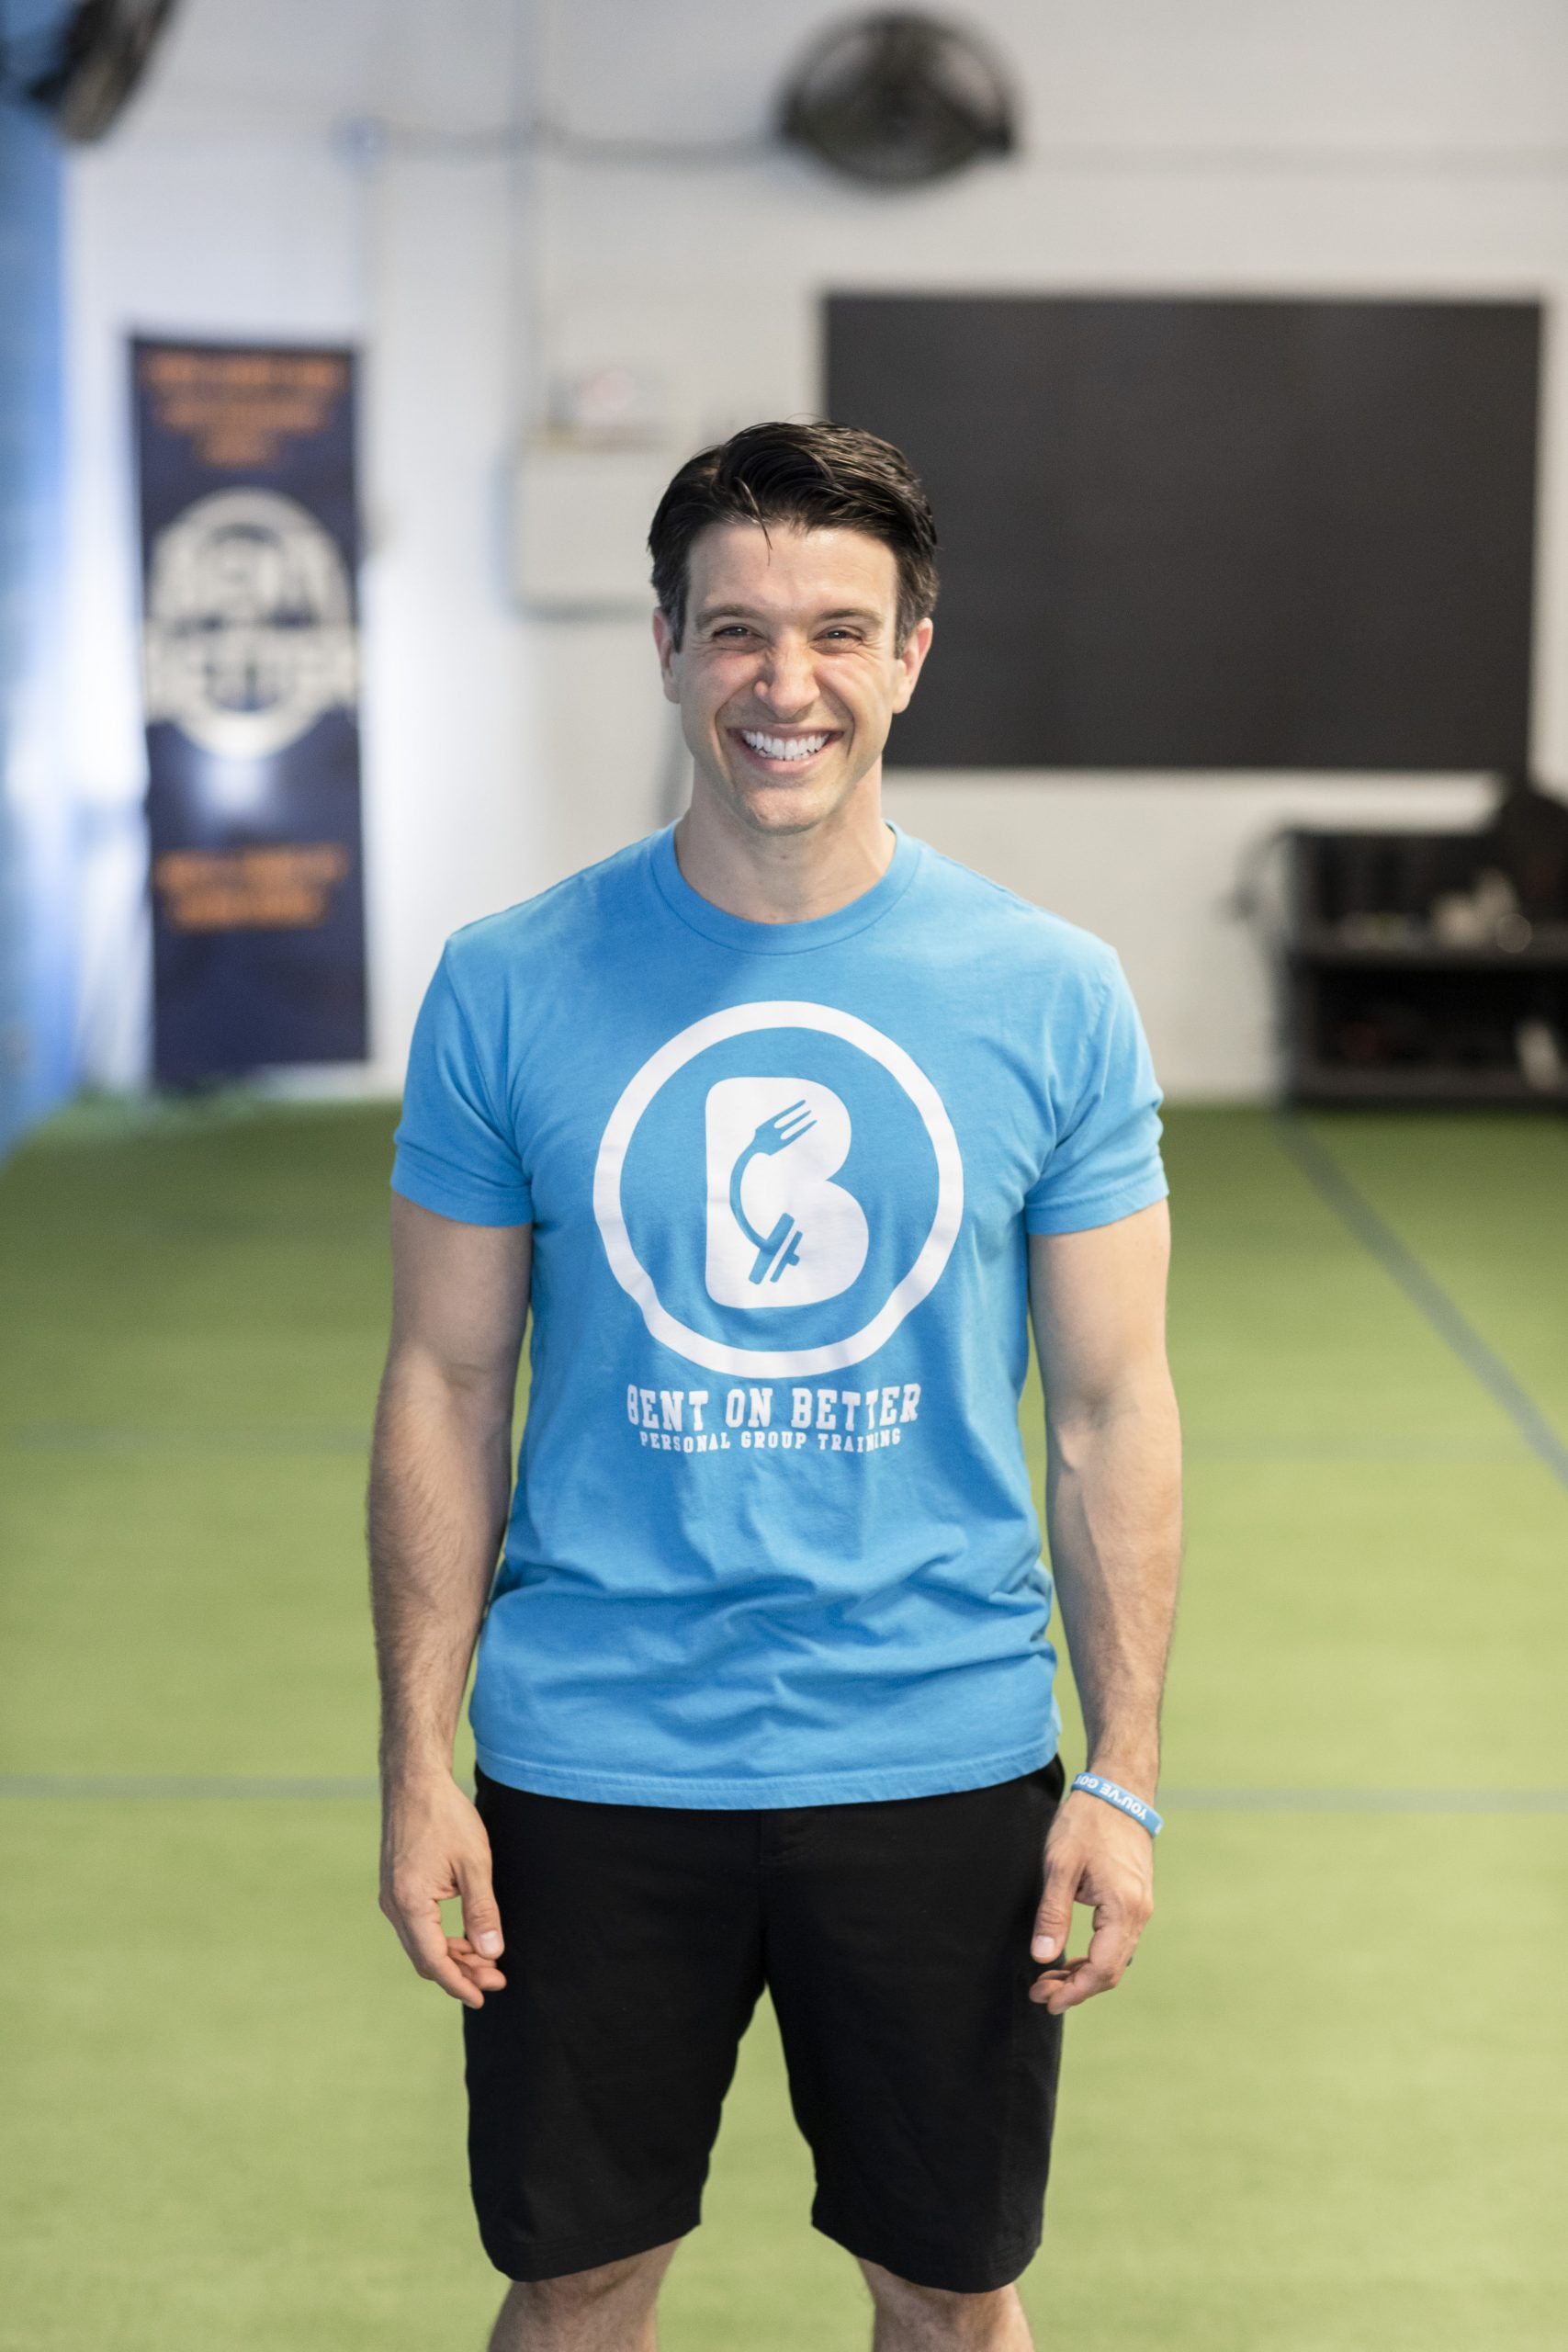 gyms in west chester- Bent On Better - personal trainers-Matt April